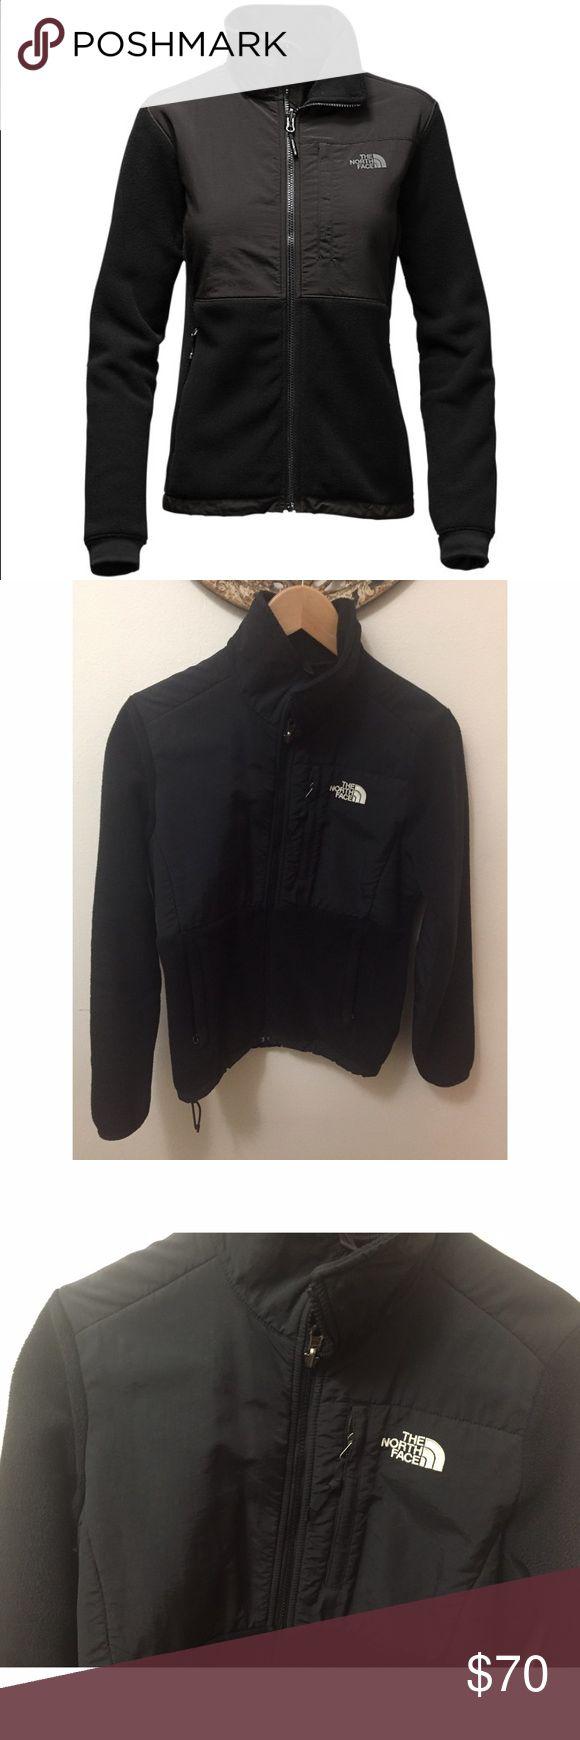 Woman's fleece north face jacket! The north face woman's fleece jacket, used but still in good condition. Please ask questions & make offers! The North Face Jackets & Coats